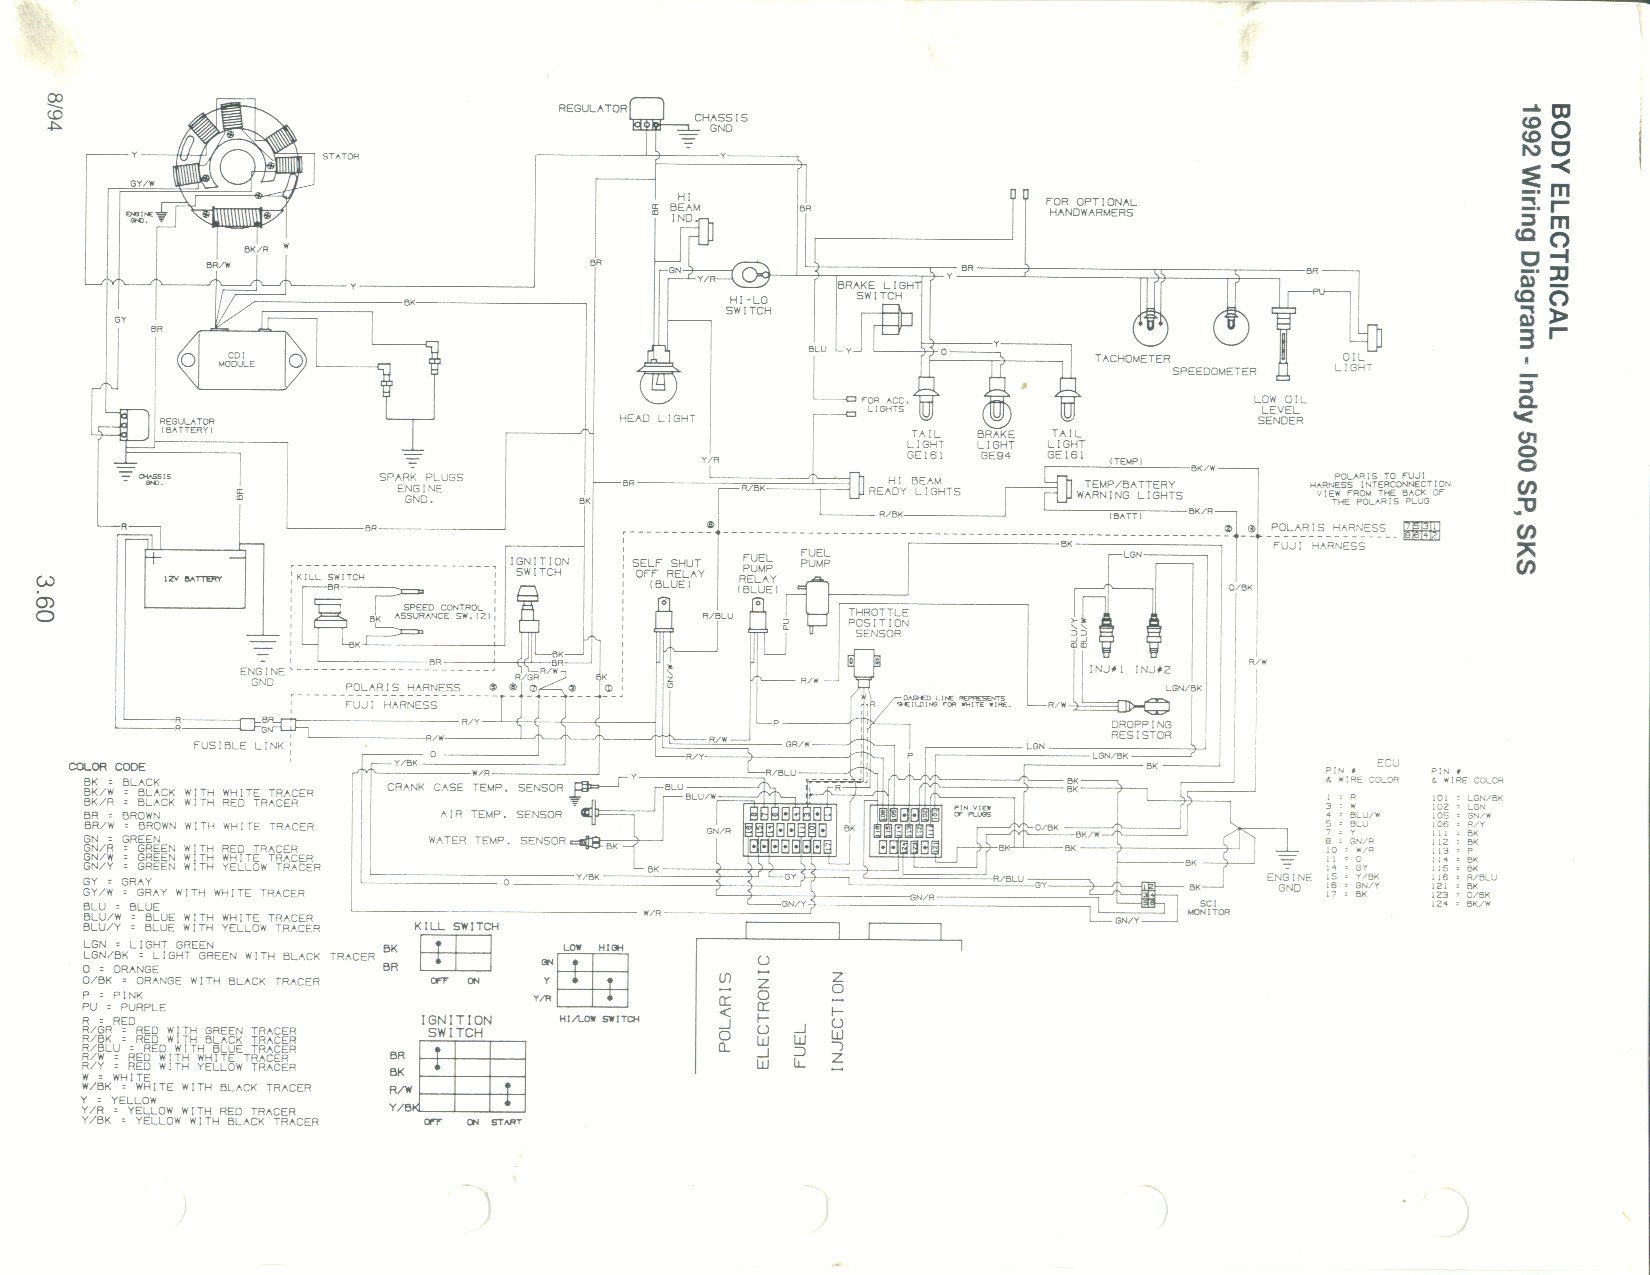 hight resolution of wiring diagram for 1991 polaris rxl wiring diagrams sapp 1994 polaris indy rxl 650 wiring diagram polaris 650 wiring diagram